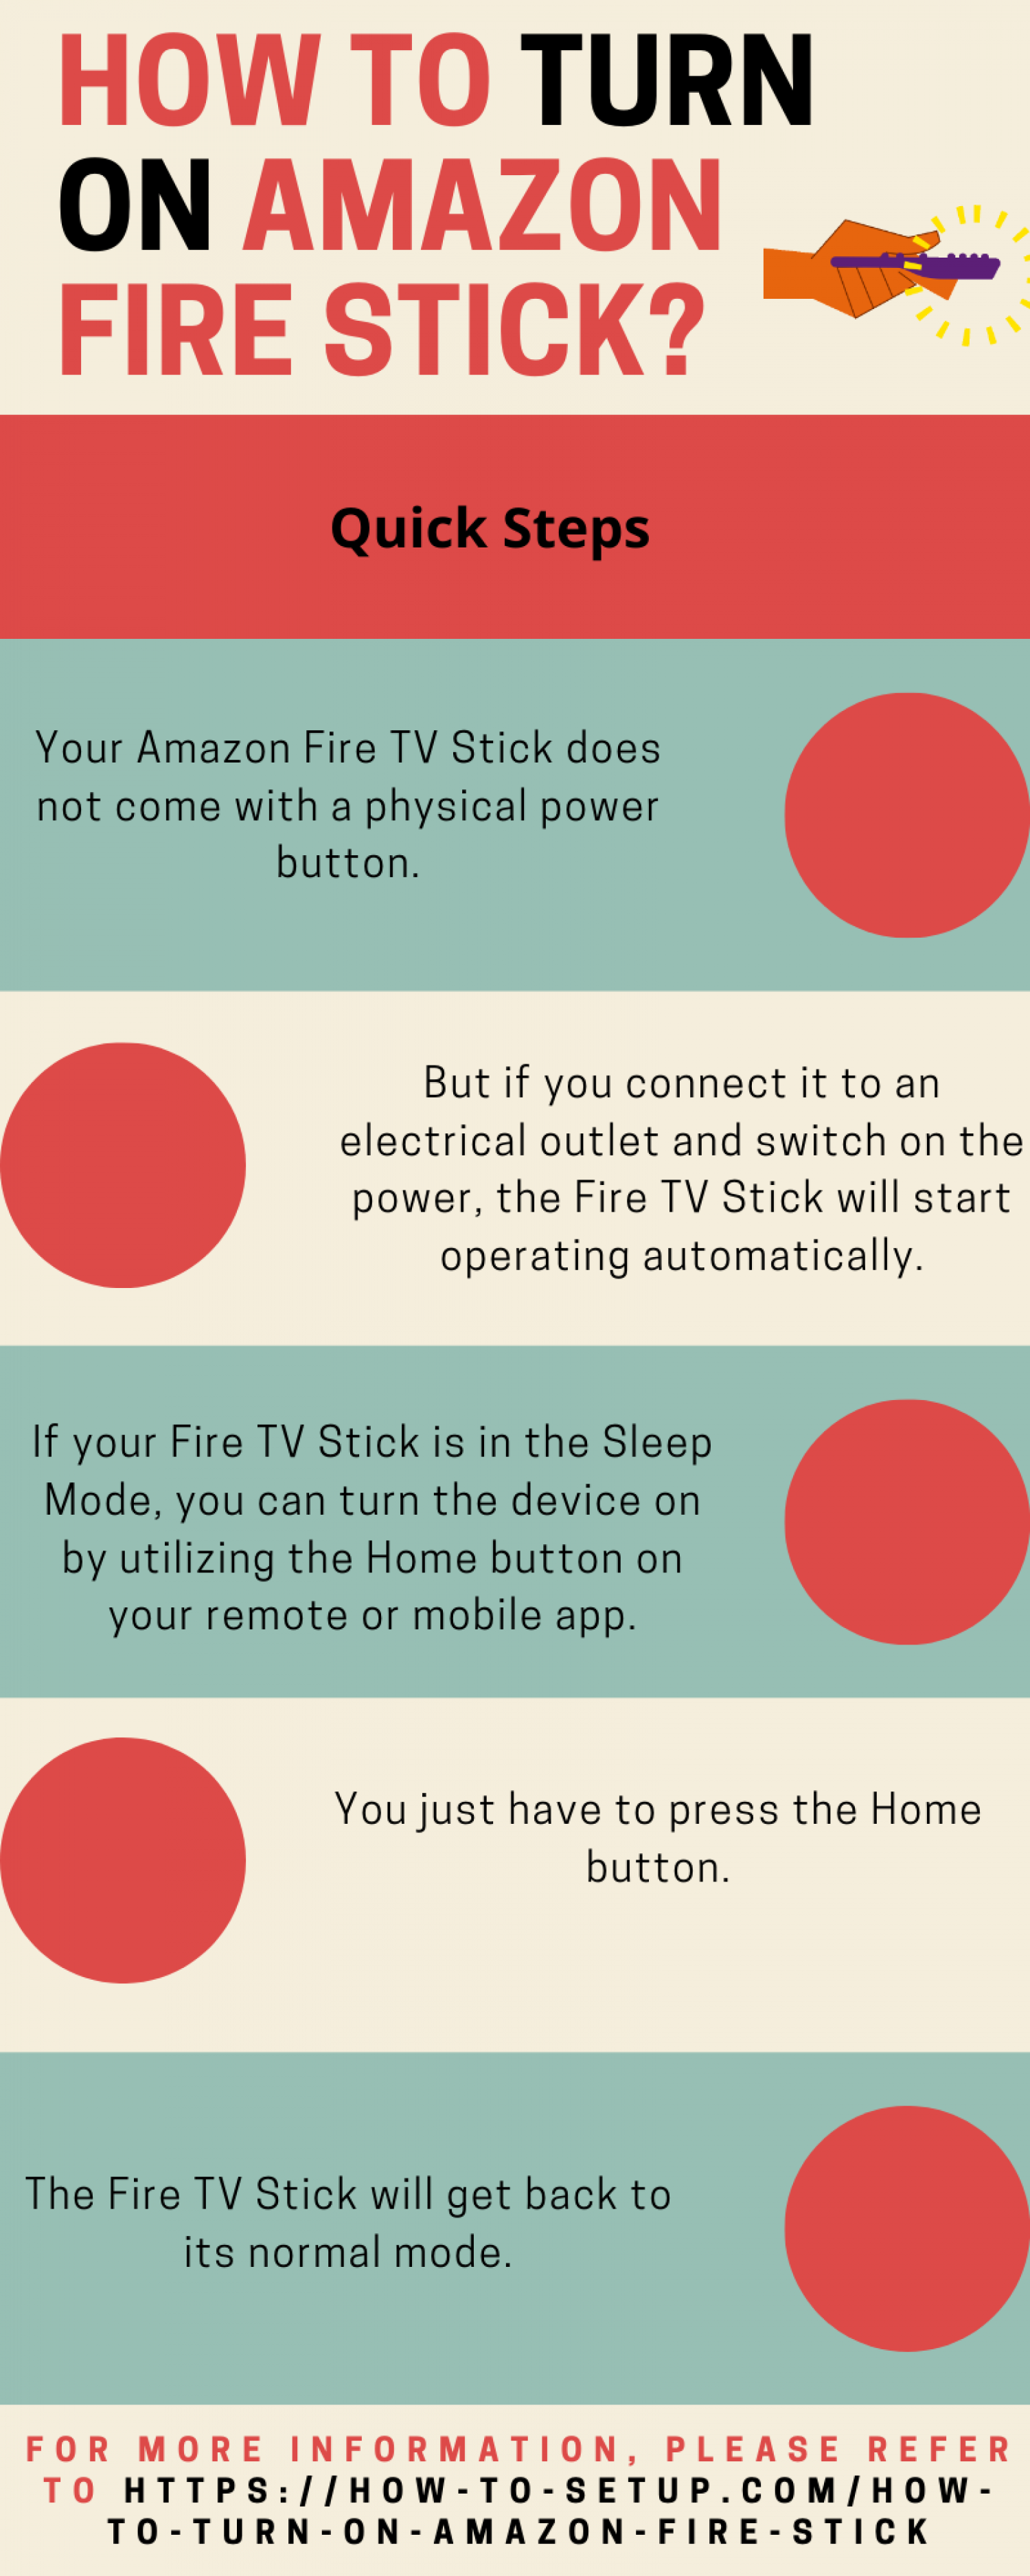 How To Turn On Amazon Fire Stick? Infographic